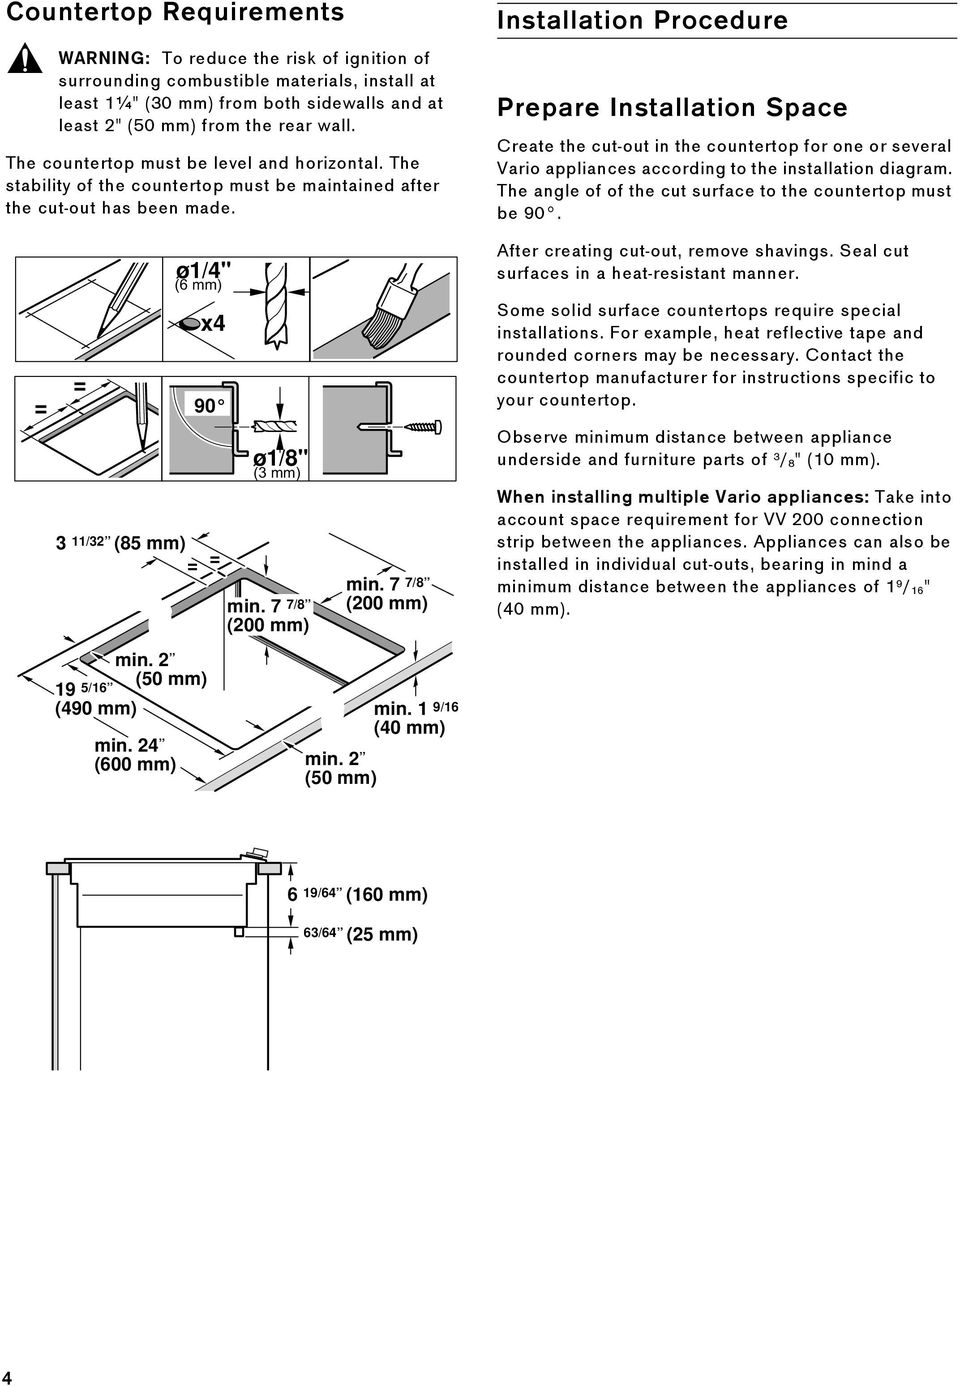 Installation Procedure Prepare Installation Space Create the cut-out in the countertop for one or several Vario appliances according to the installation diagram.